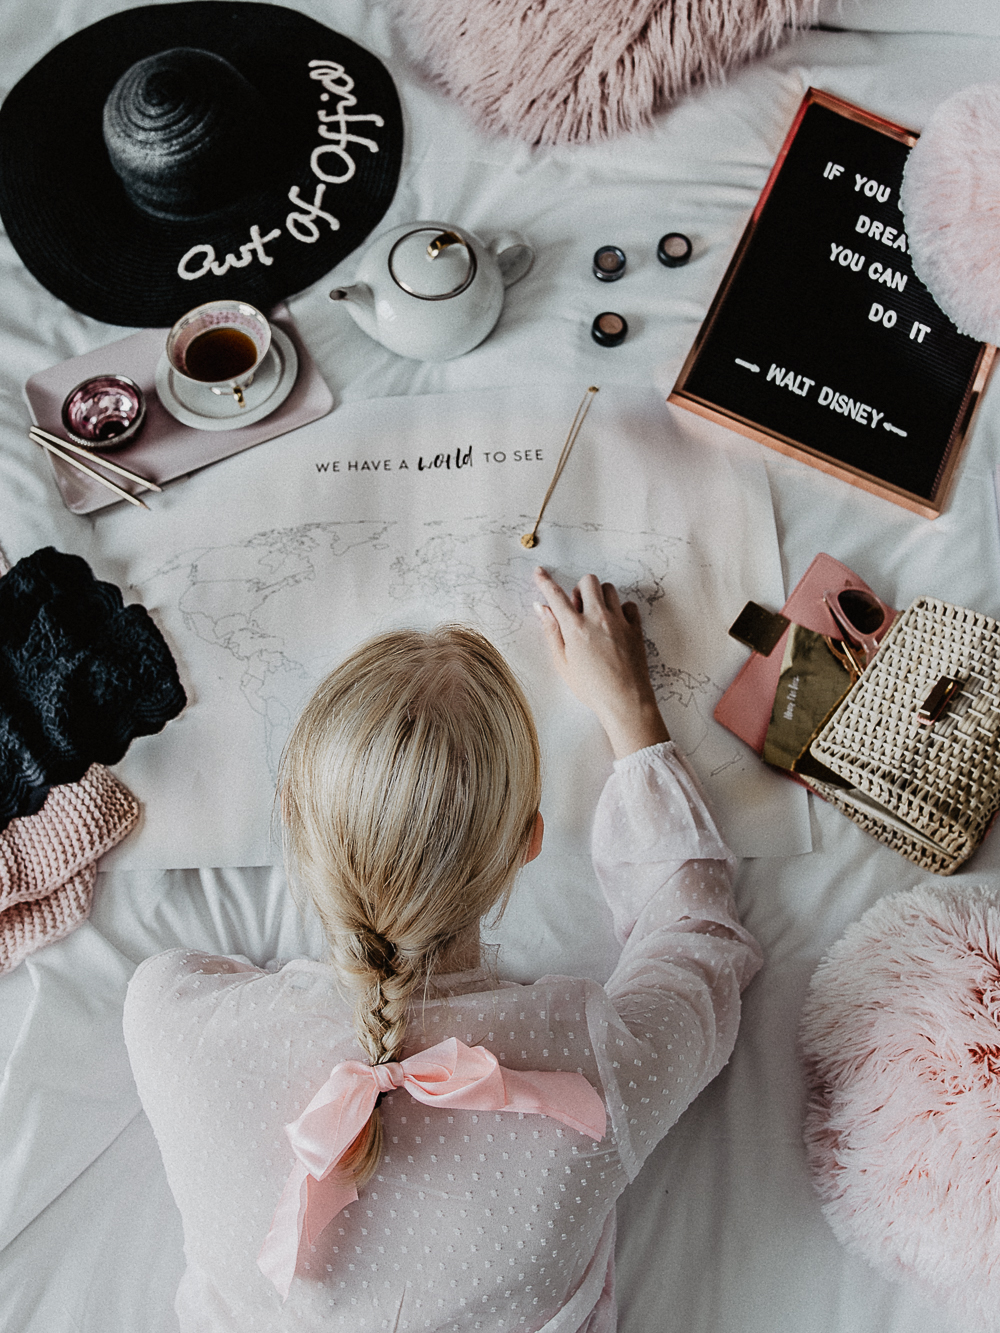 Pink and White Bed Flatlay for Travelinspo at Instagram in minimal chic- Blonde Girl lying in bed is looking at a map for the next vacation destination and all her travel dreams by Be Sassique